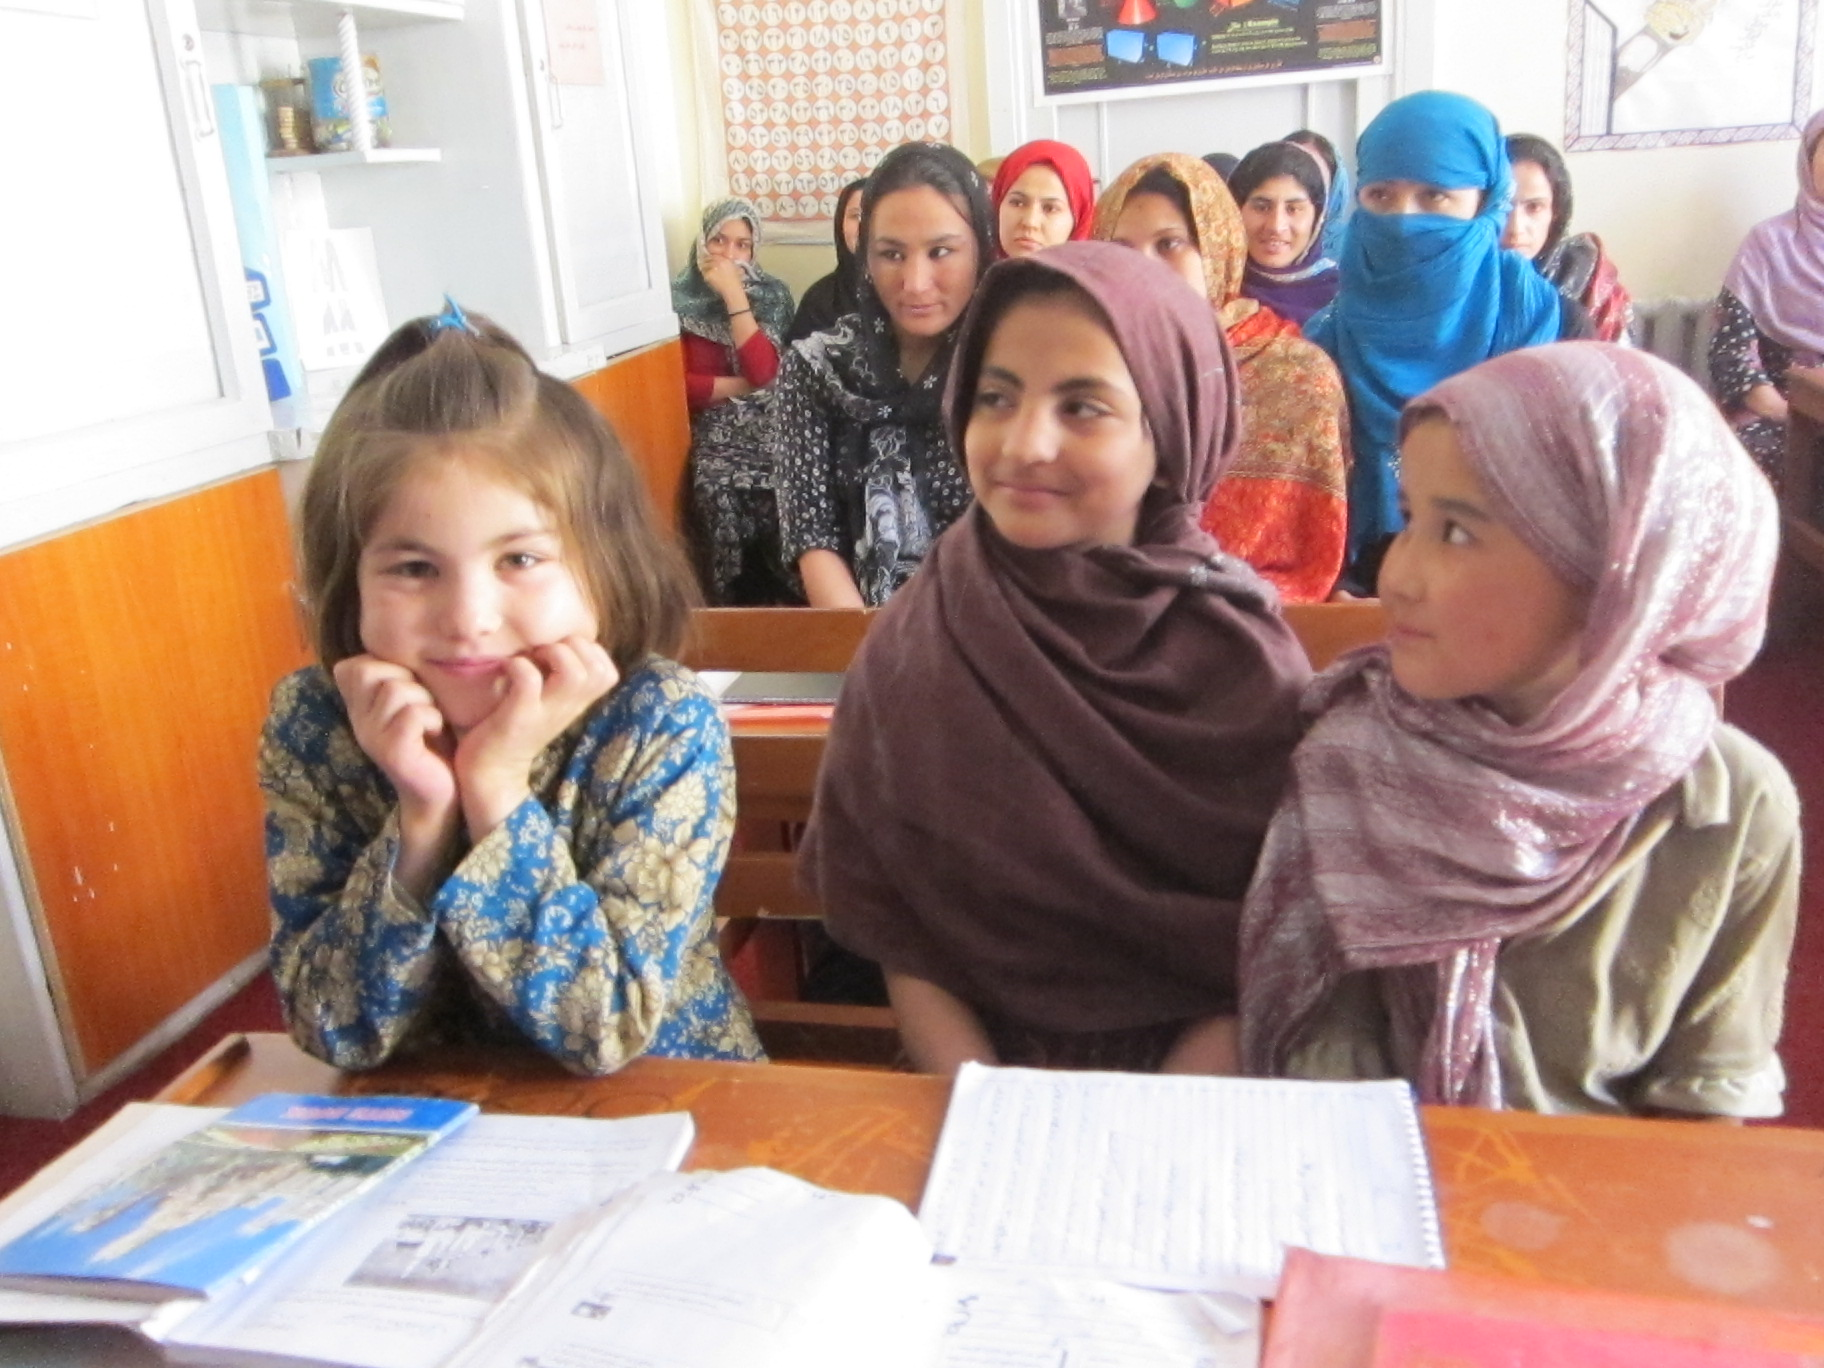 Women-and-girls-classroom_0.jpg